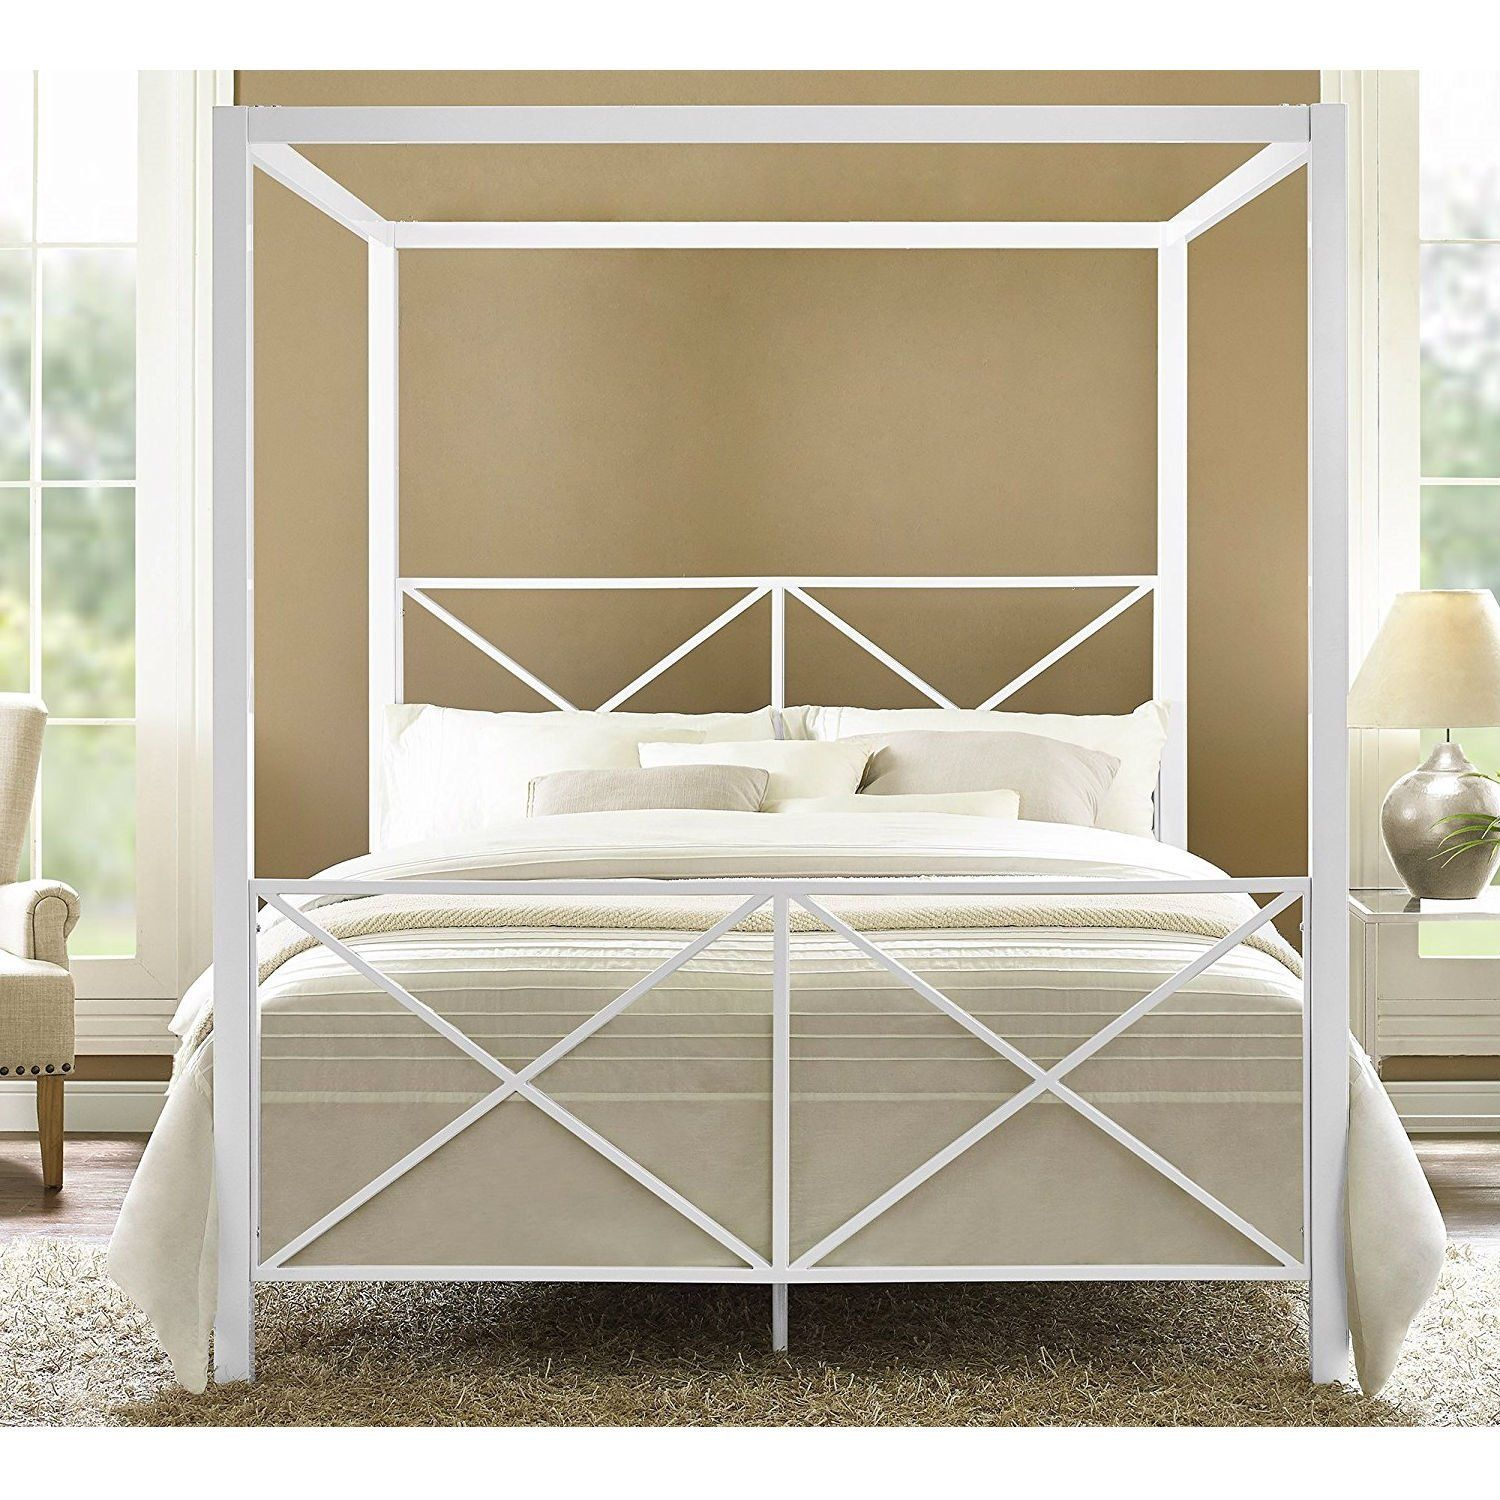 - Queen Size Sturdy Metal Canopy Bed Frame In White Canopy Bed